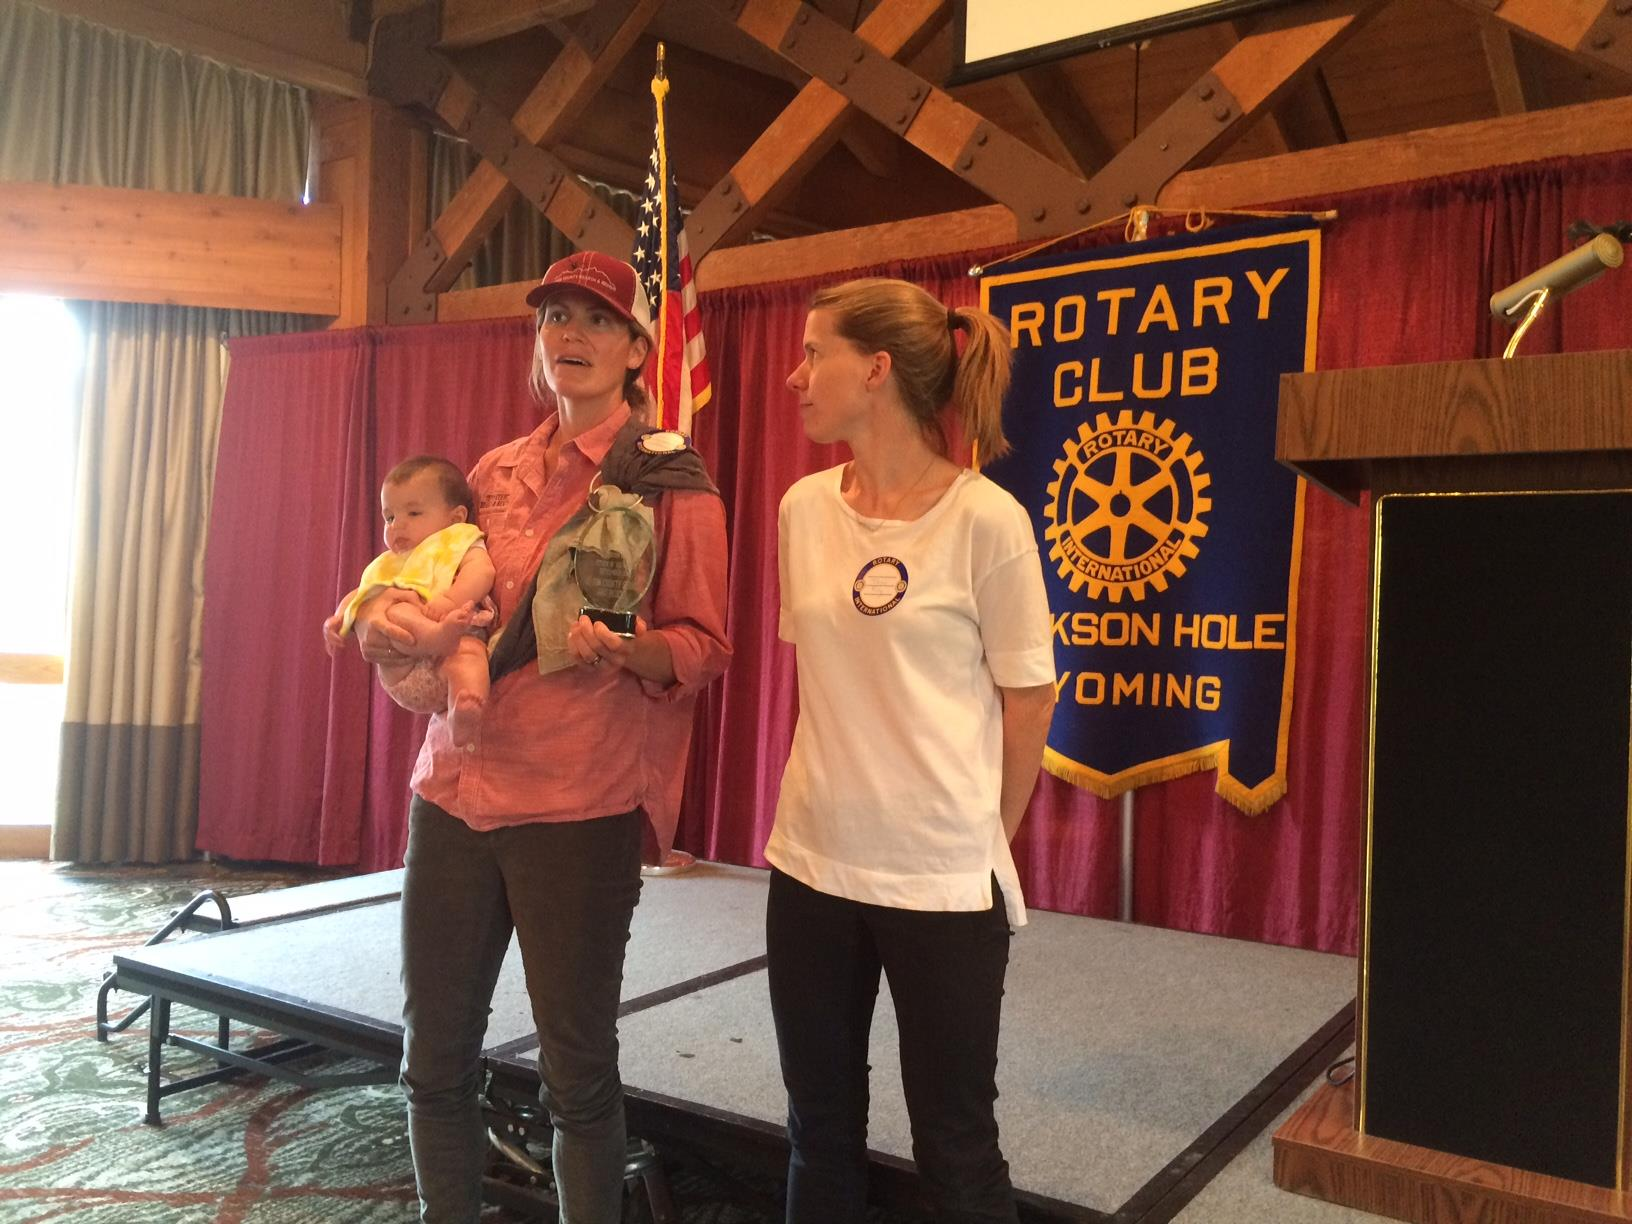 Stephanie Thomas, Executive Director of the TCSAR Foundation, and Jessica King, TCSAR Coordinator, accept Rotary's Citizen of the Month award on behalf of the entire Teton County Search and Rescue.